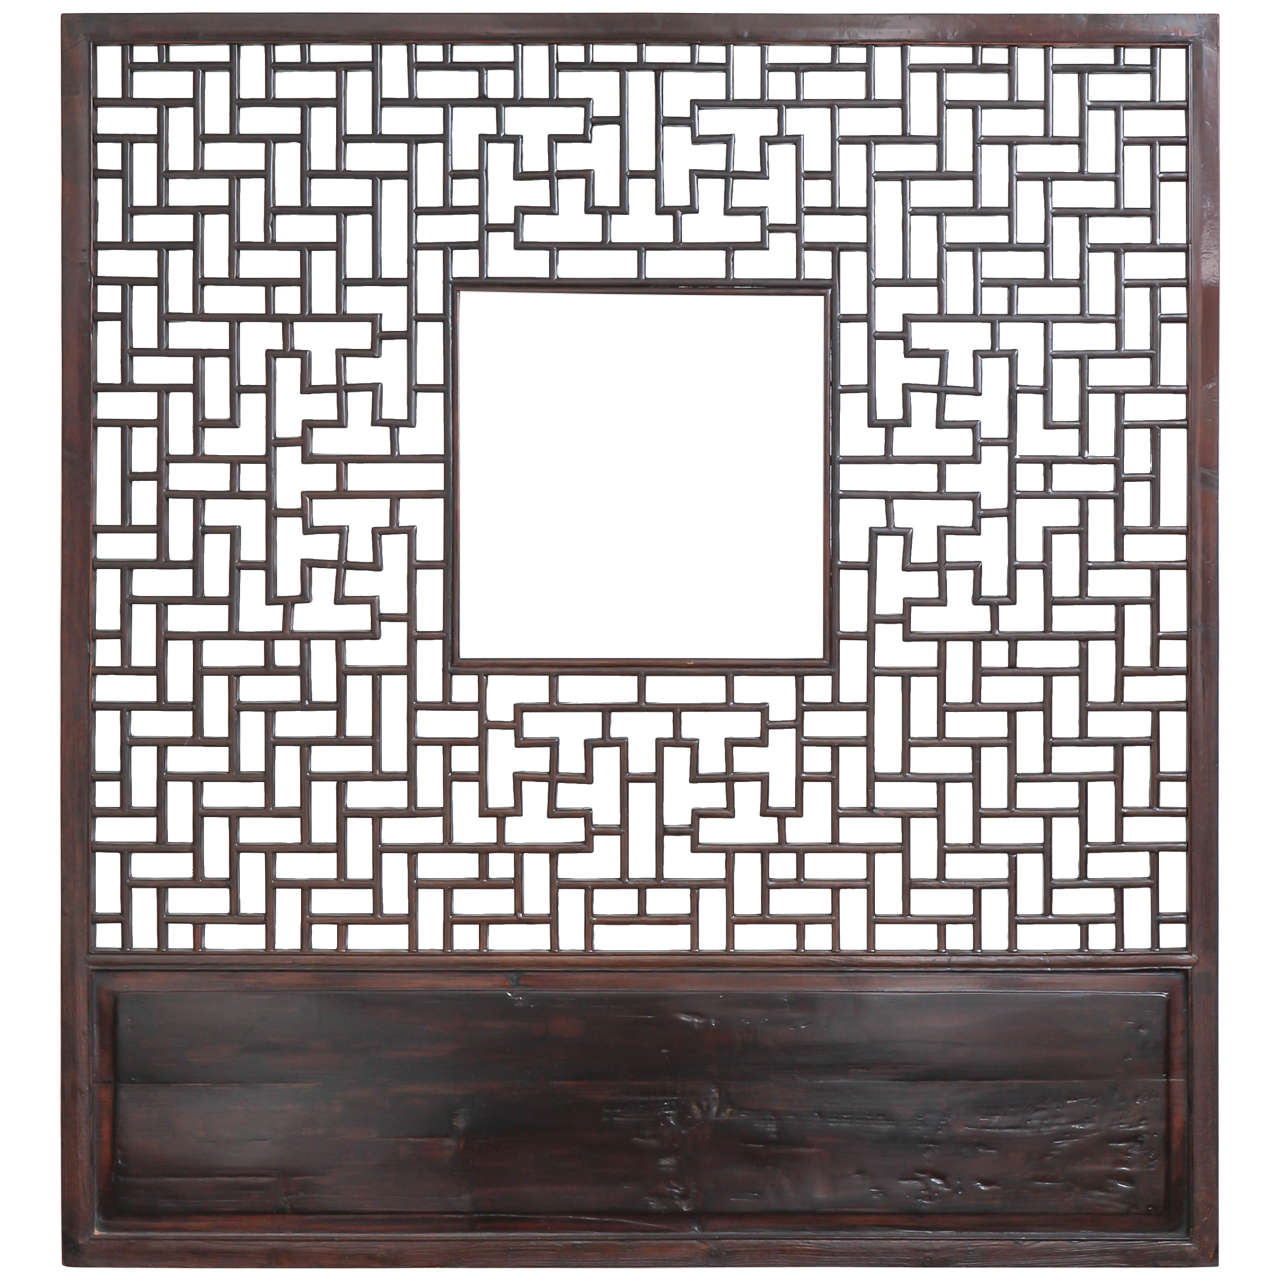 Lattice screen panel from china late 19th century at 1stdibs for Lattice screen